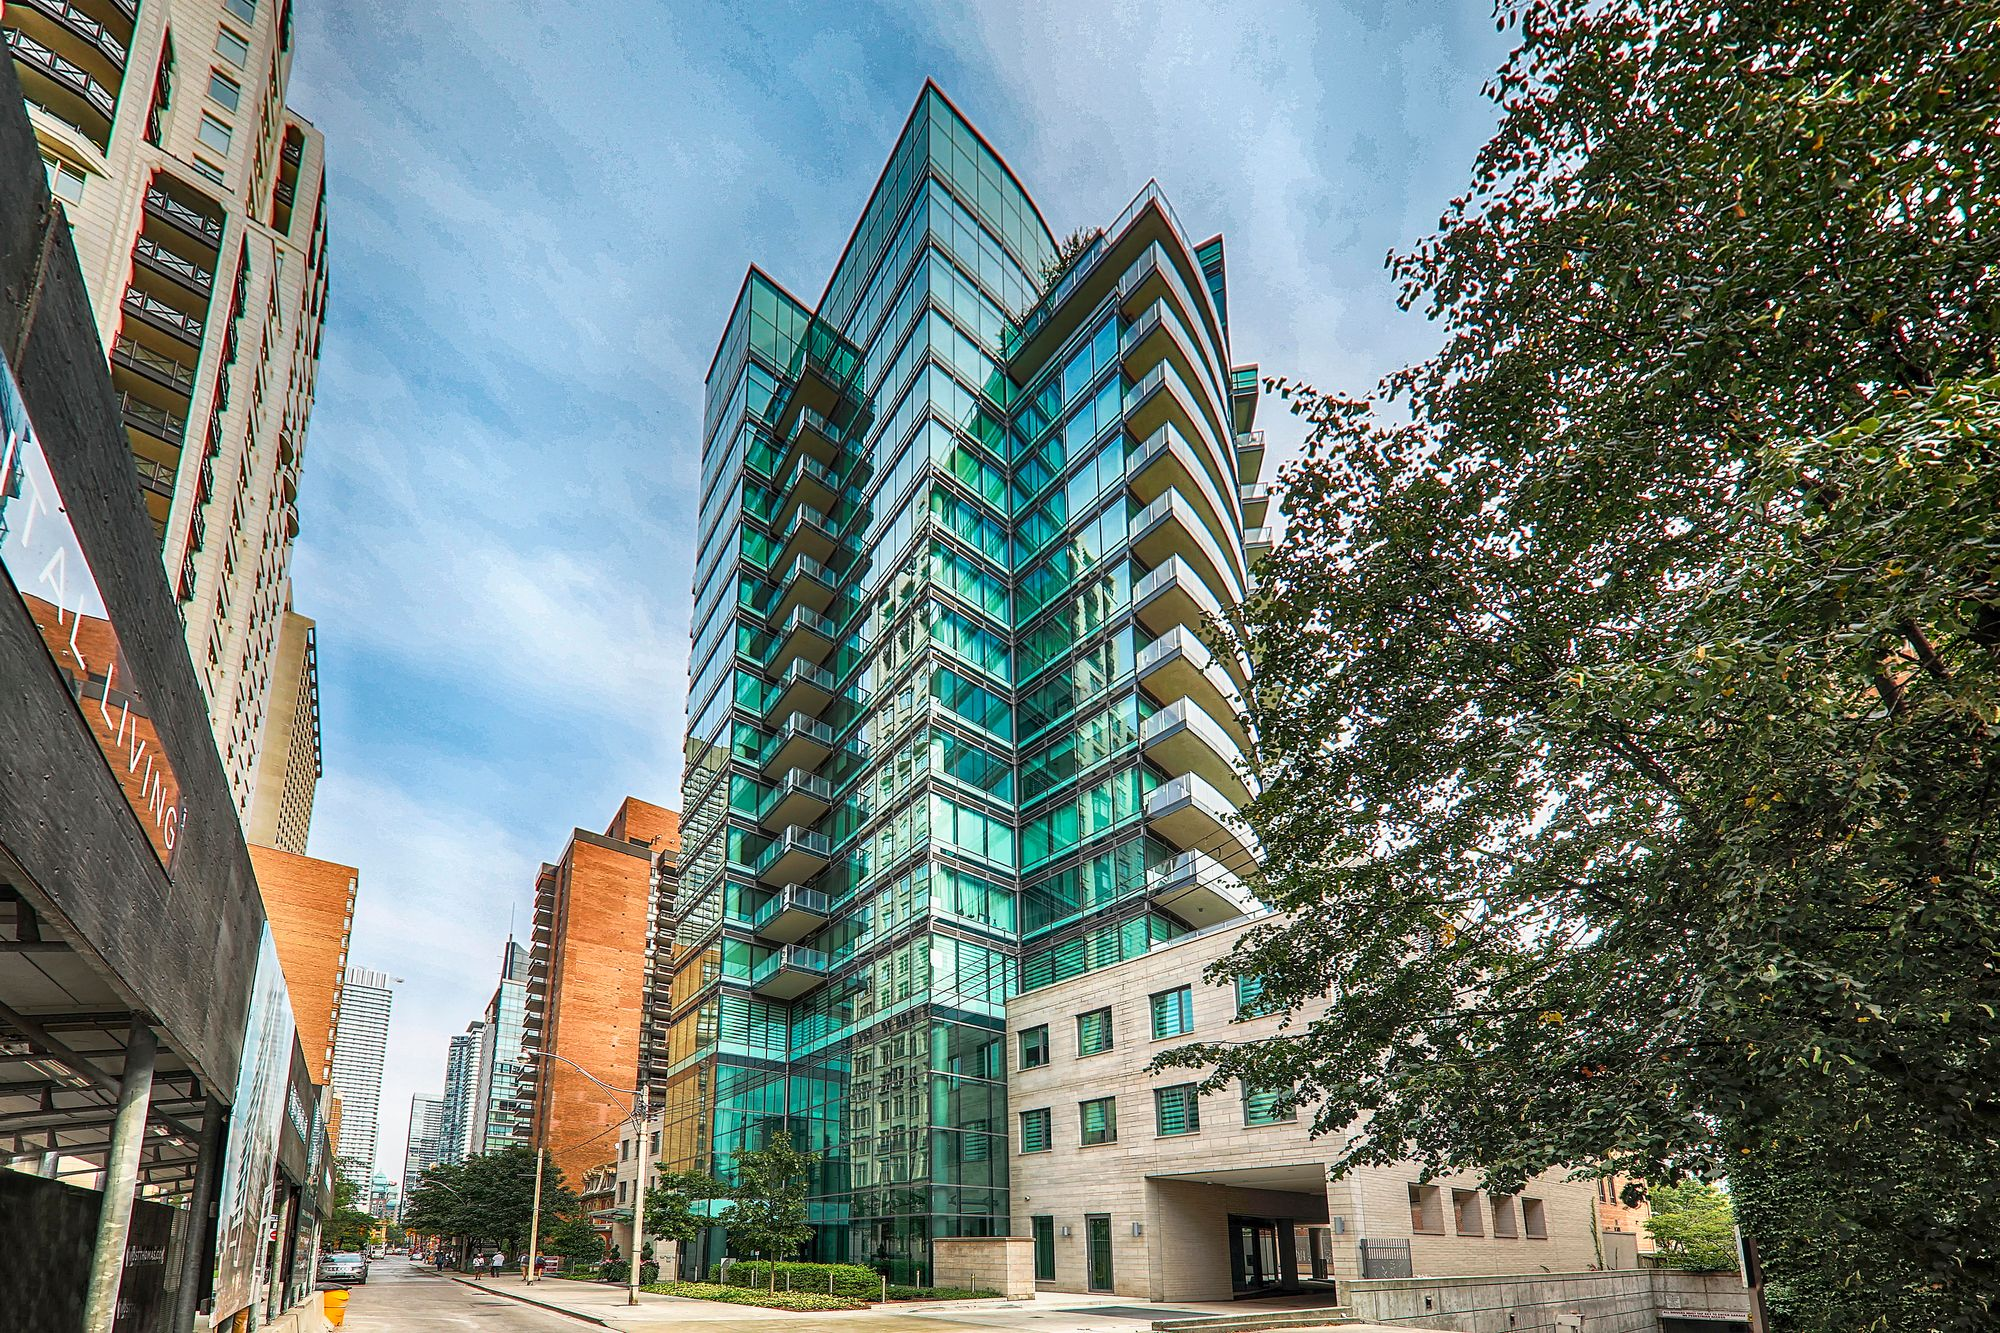 77 Charles West at 77 Charles St W. This condo is located in  Downtown, Toronto - image #2 of 4 by Strata.ca